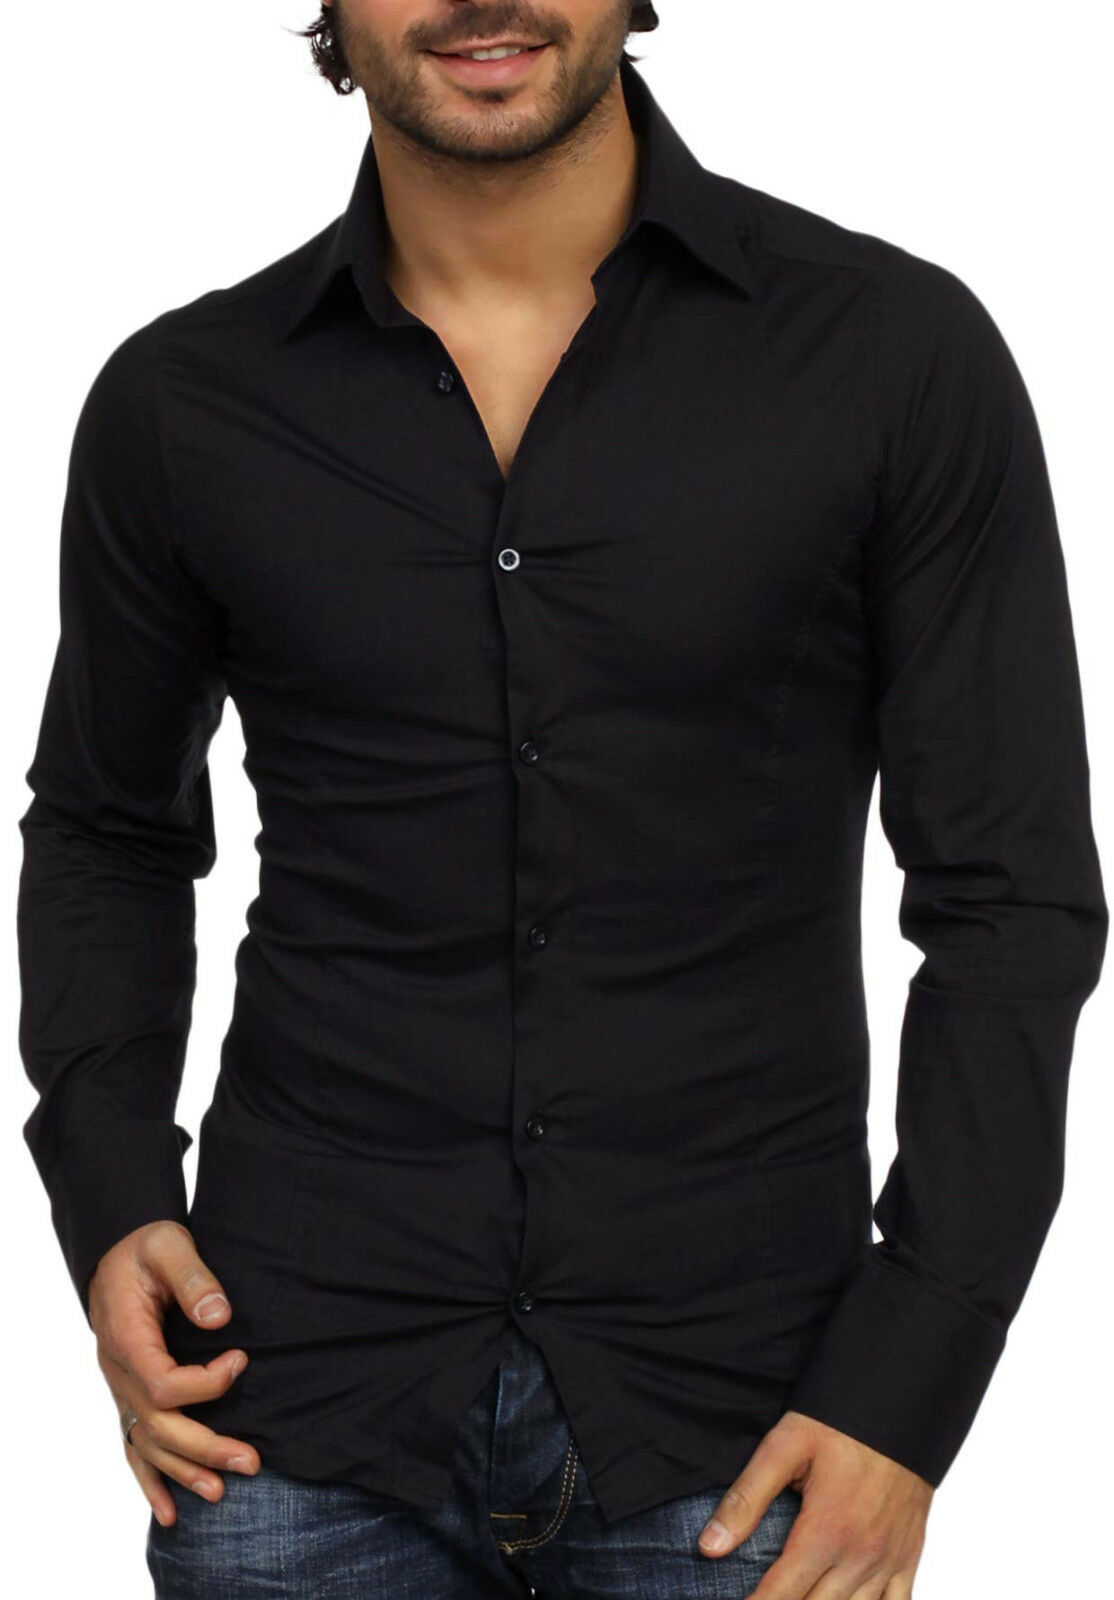 Nera - Black Long Sleeved Shirt Fashion for Man